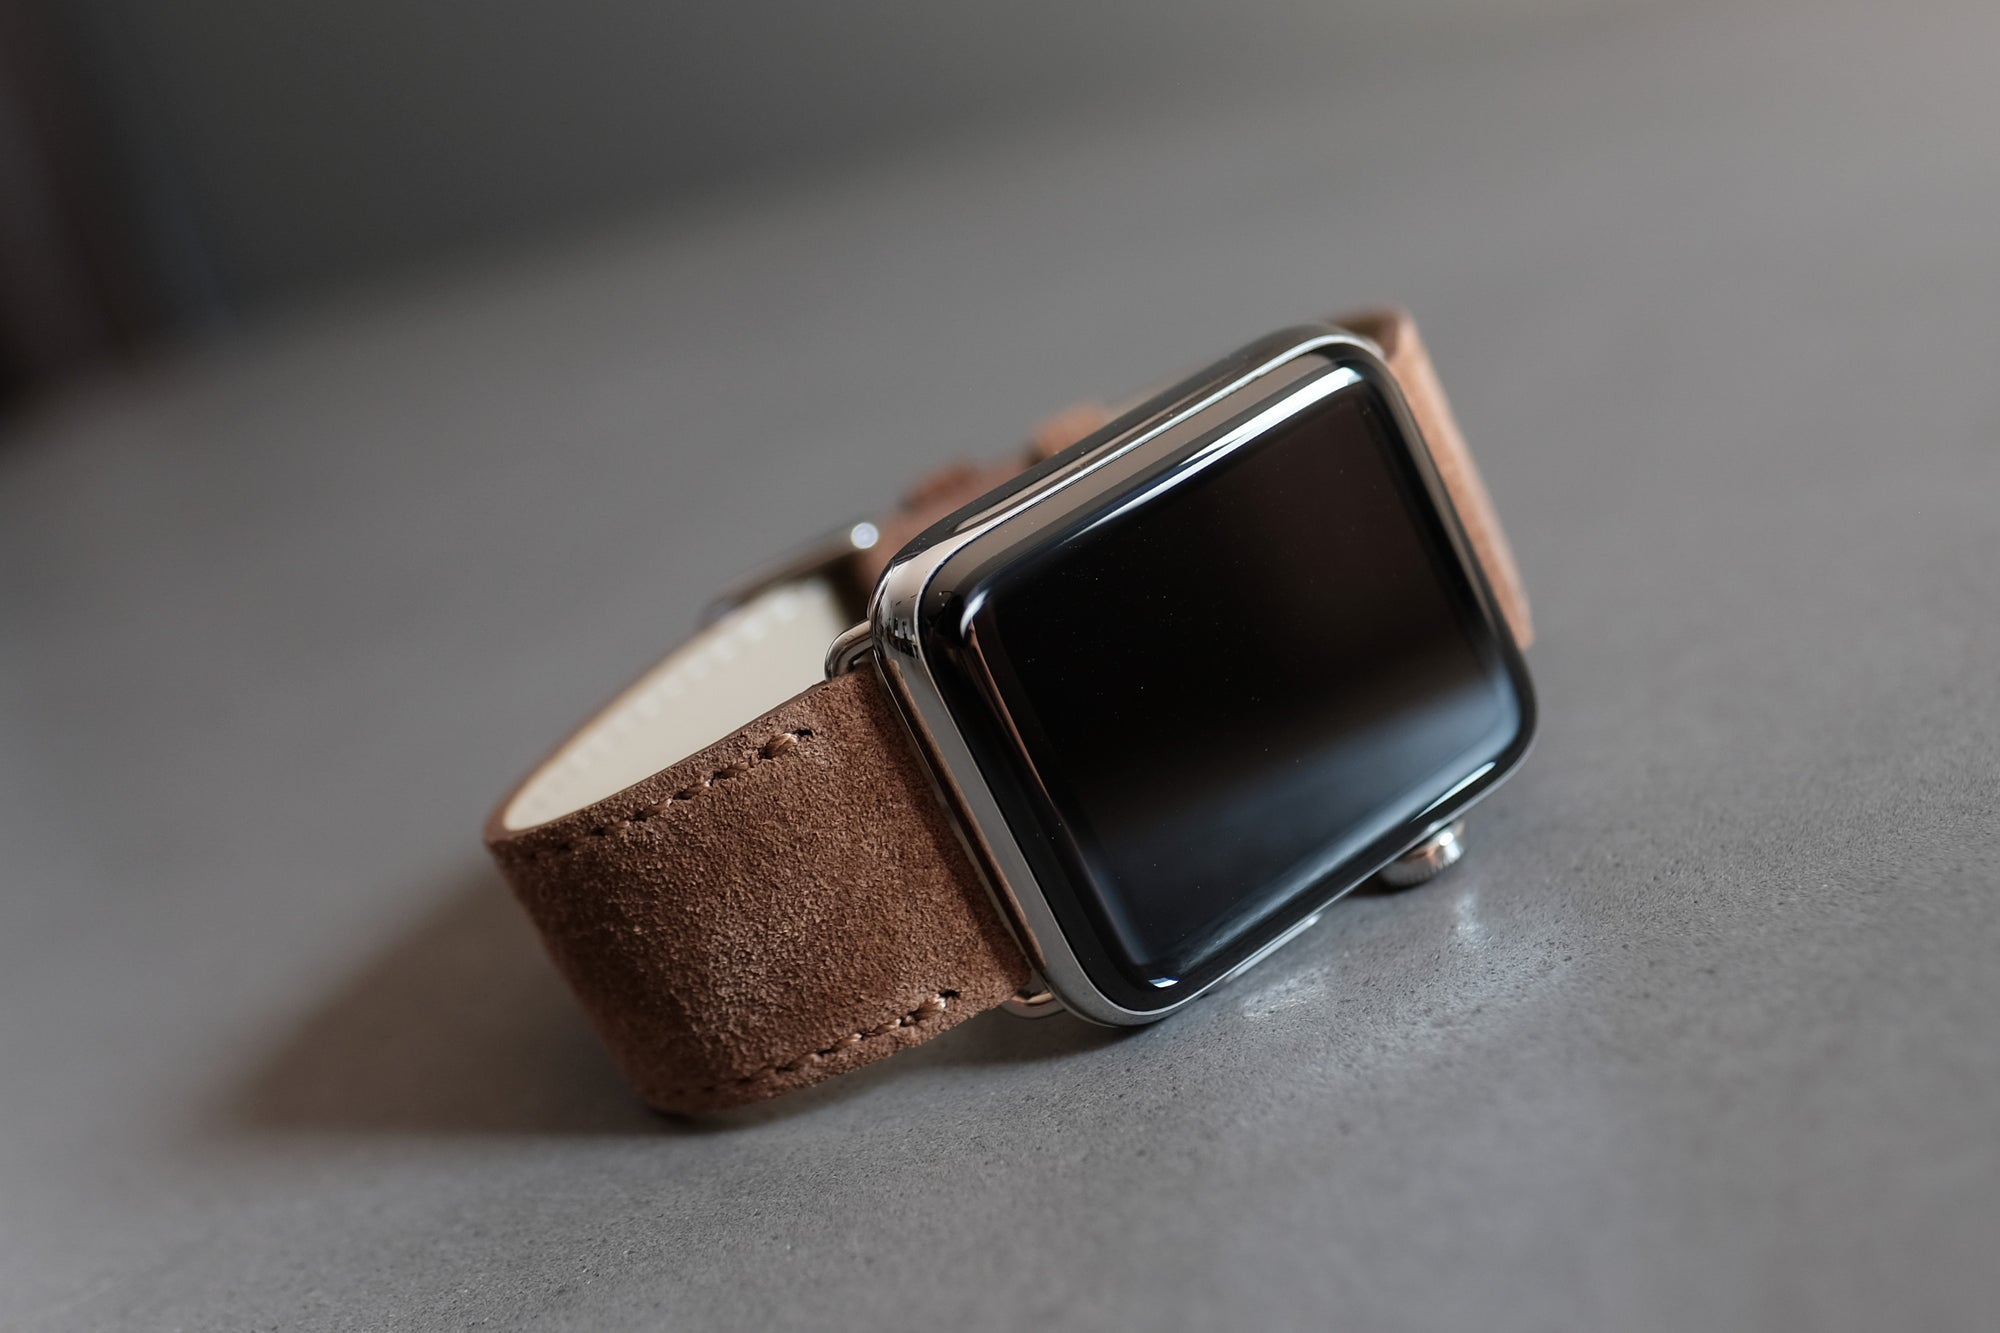 Pin and Buckle Apple Watch Bands - Velour - Suede Leather Apple Watch Band - Cognac